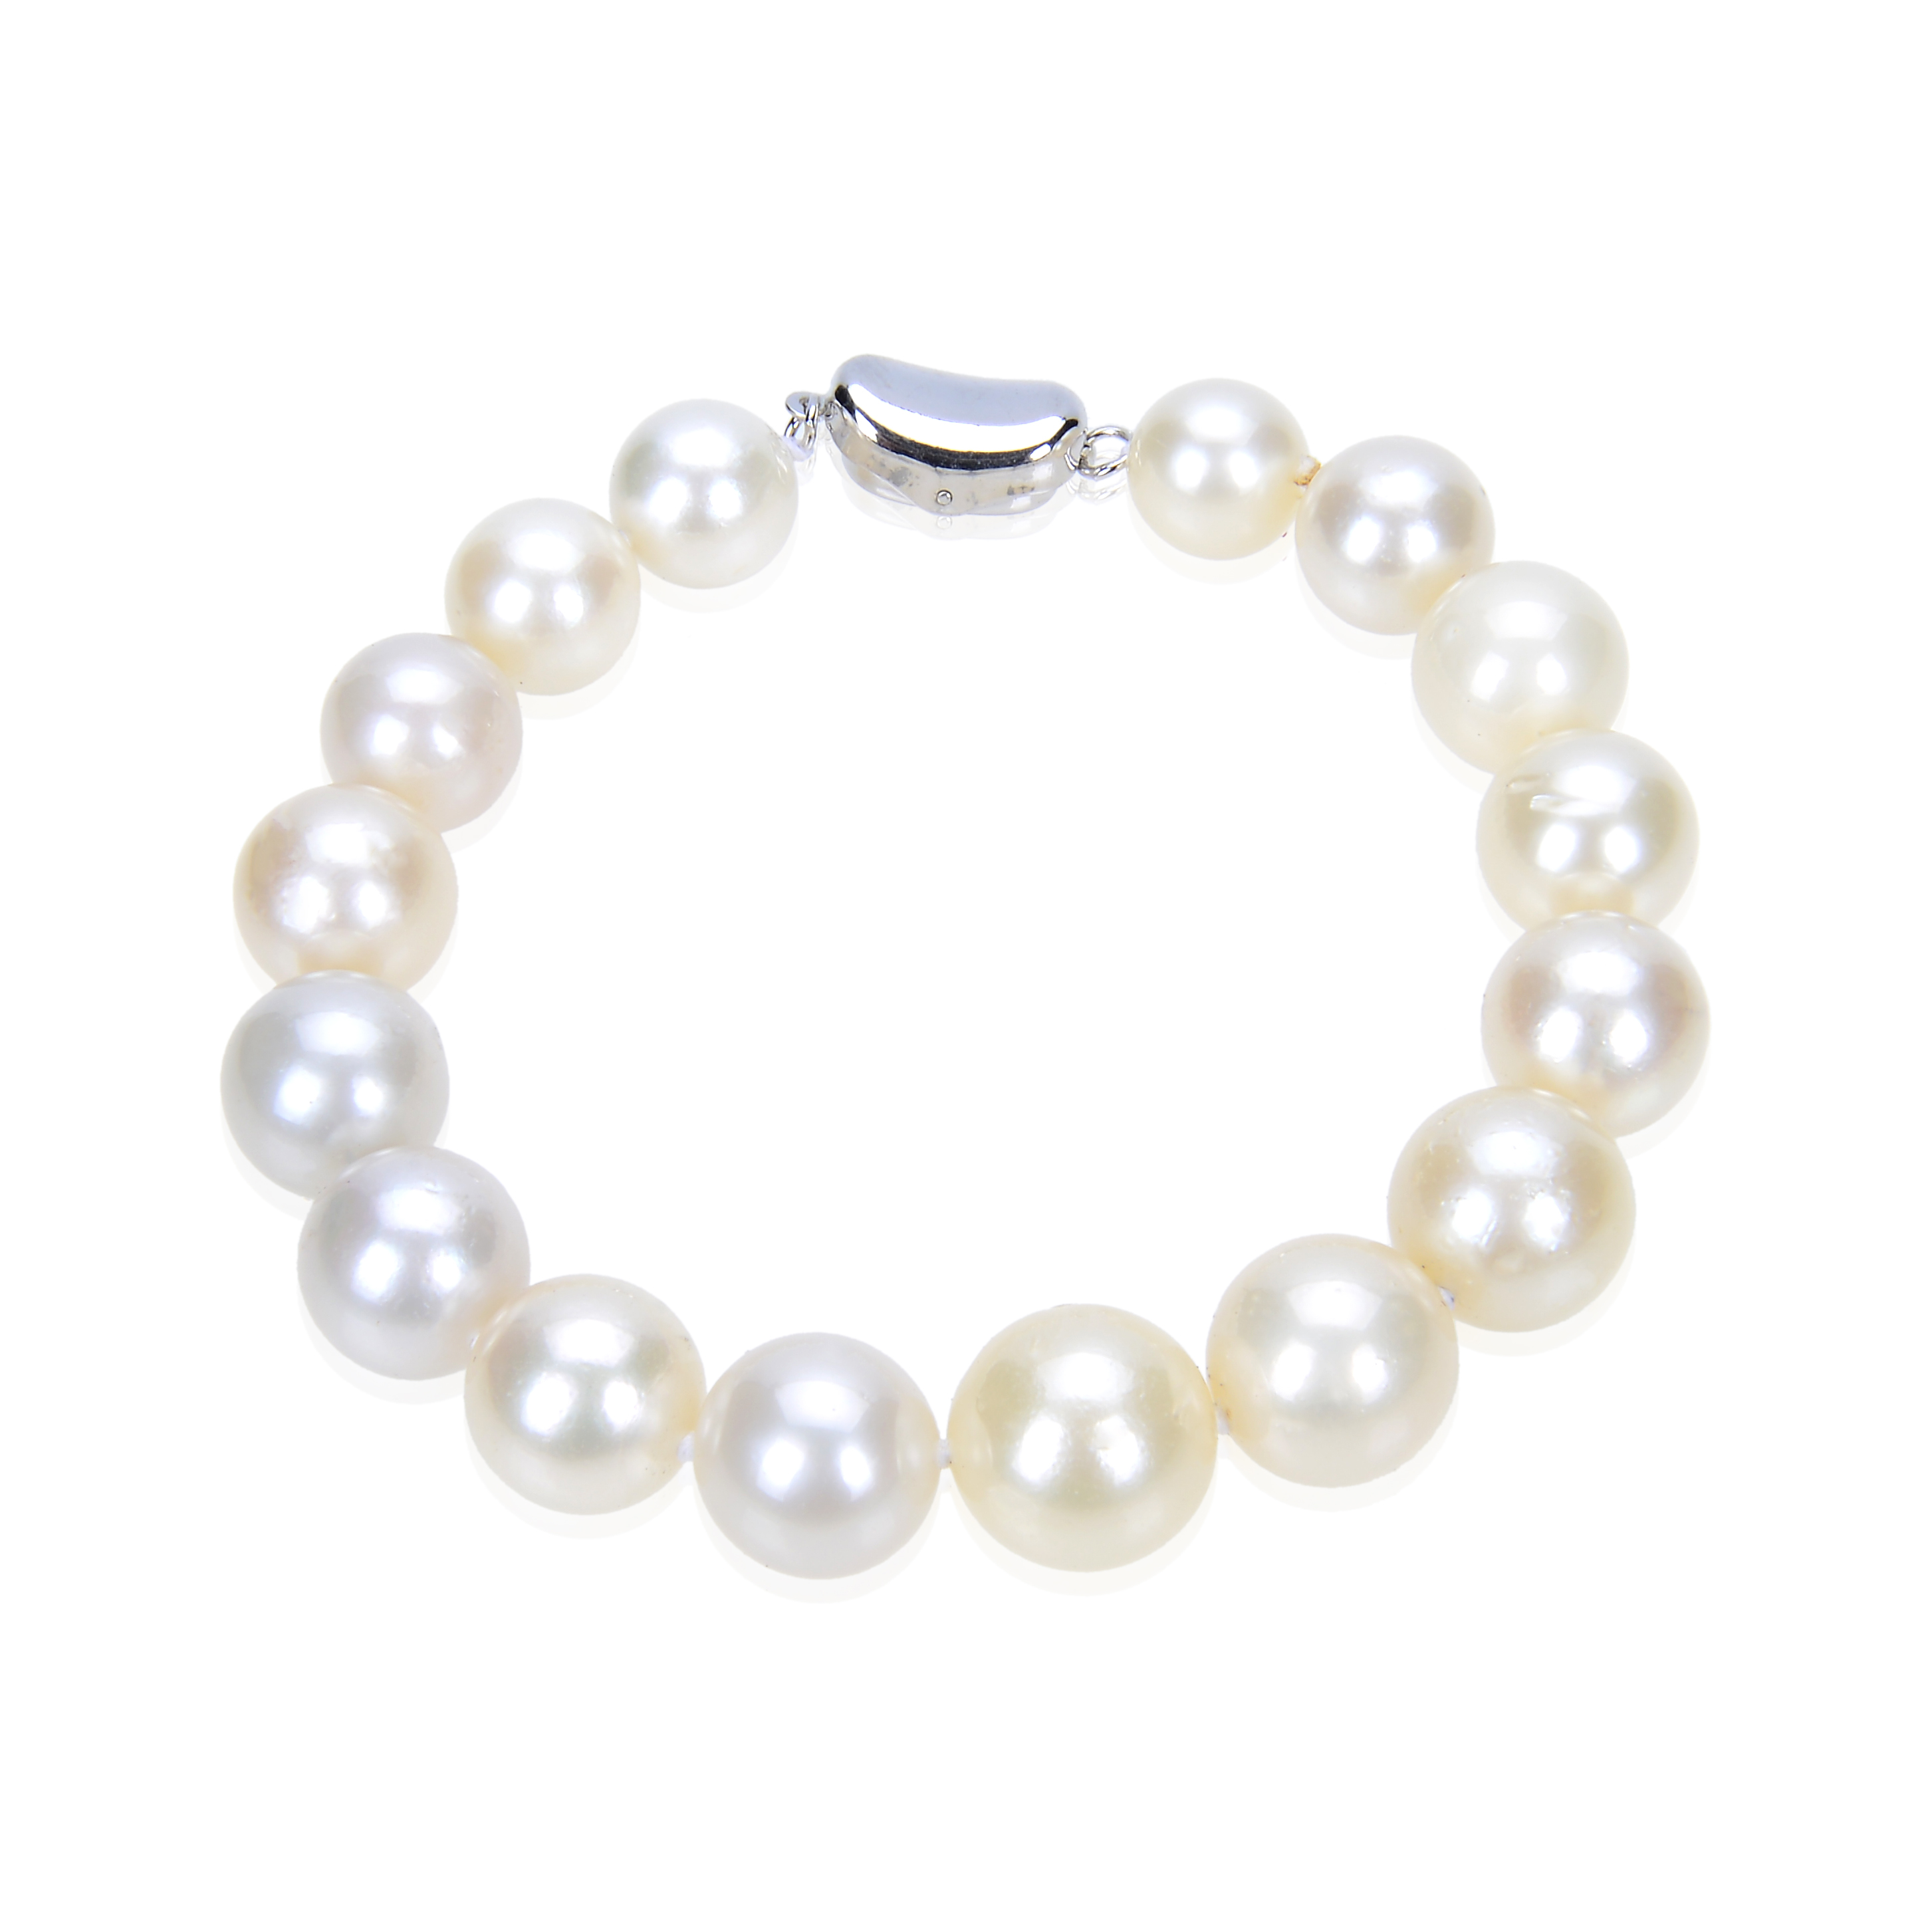 Huge 12.5 mm Natural South Sea White Pearl Bracelet -br128